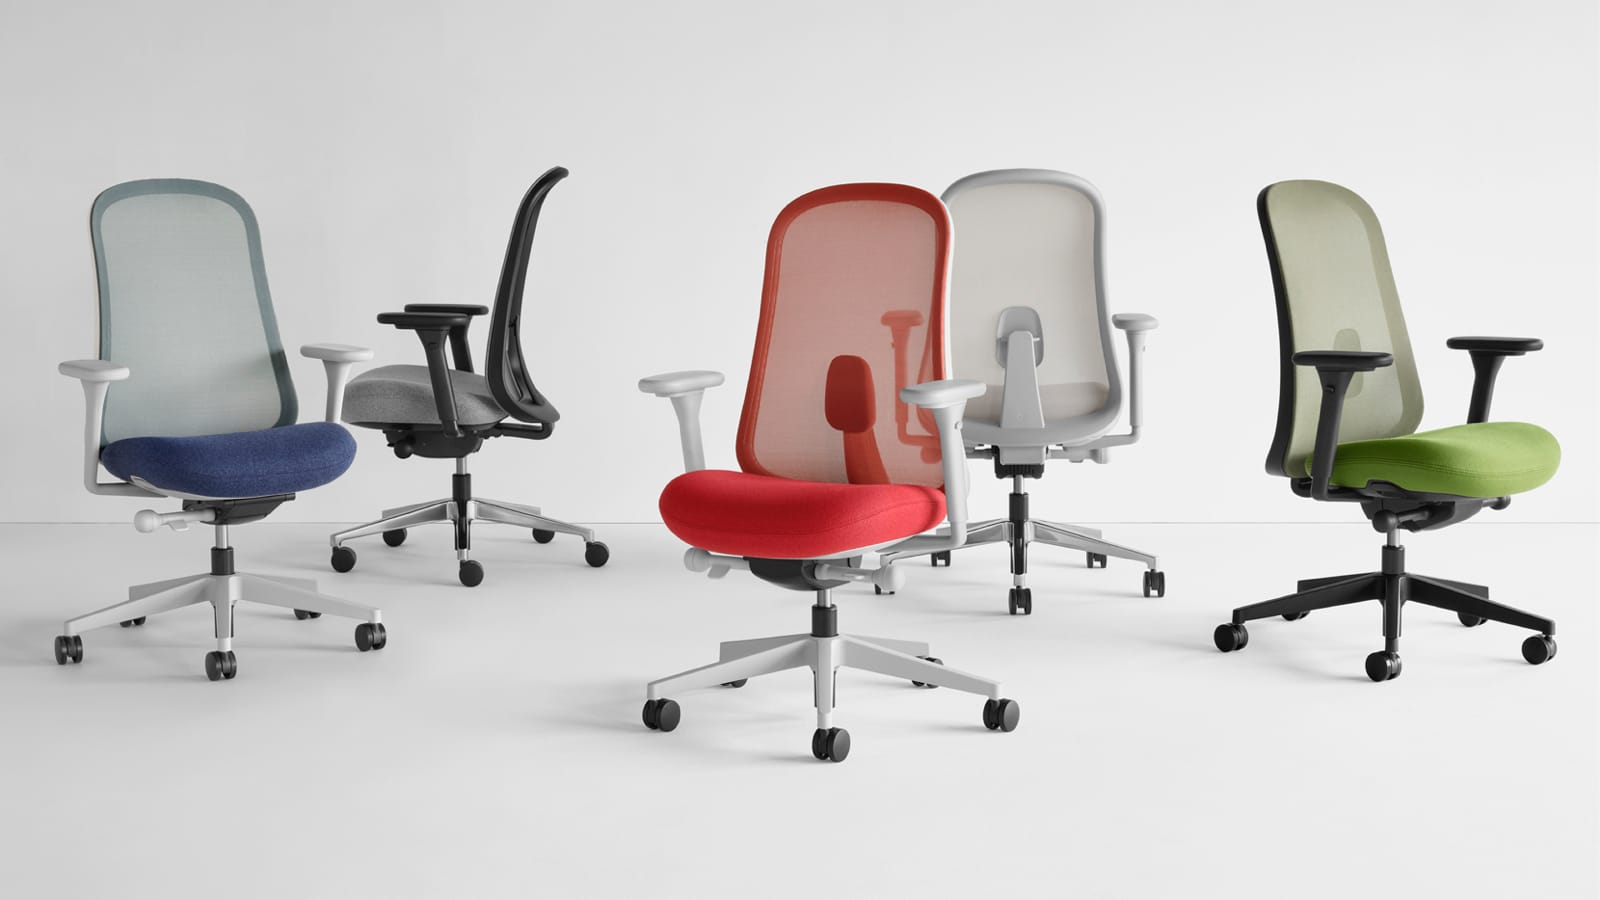 Five Lino Chairs In Blue Black Gray Red And Green Viewed From Various